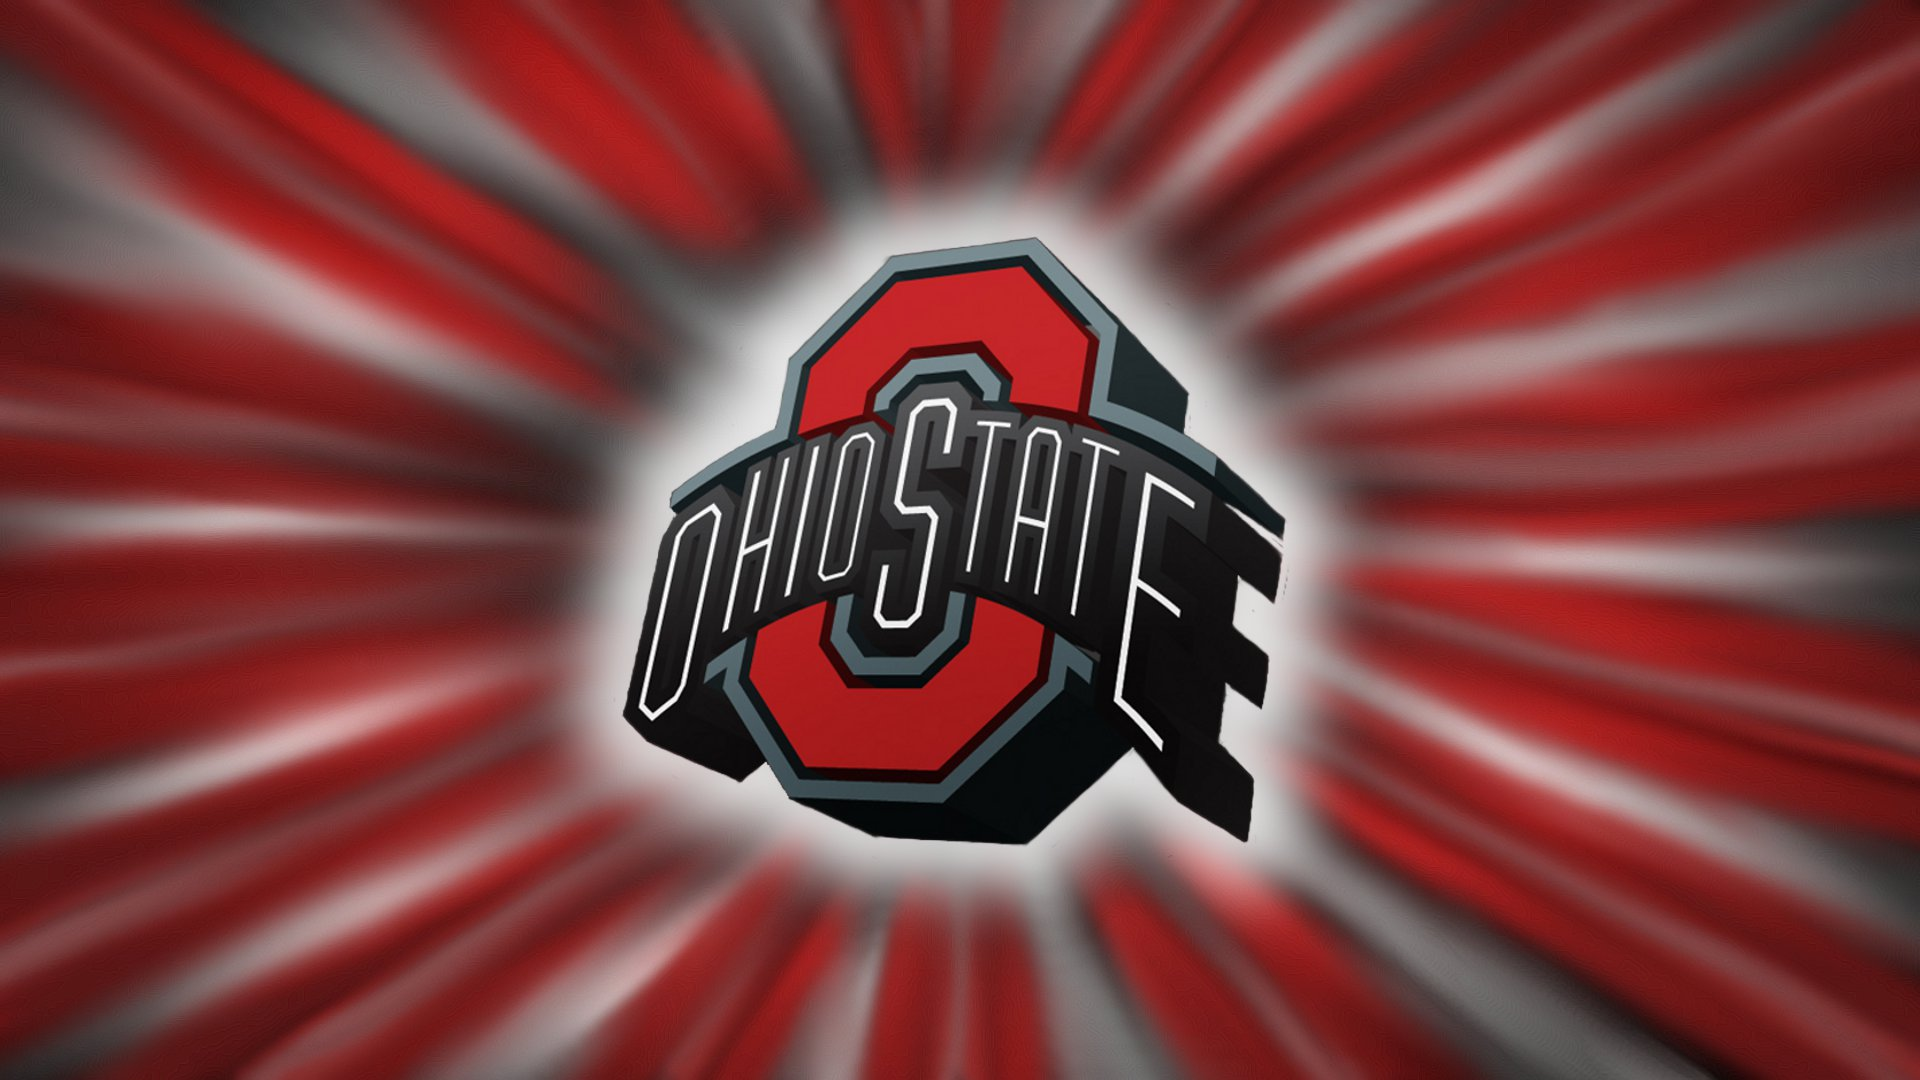 This Is The Ohio State University Thinglink